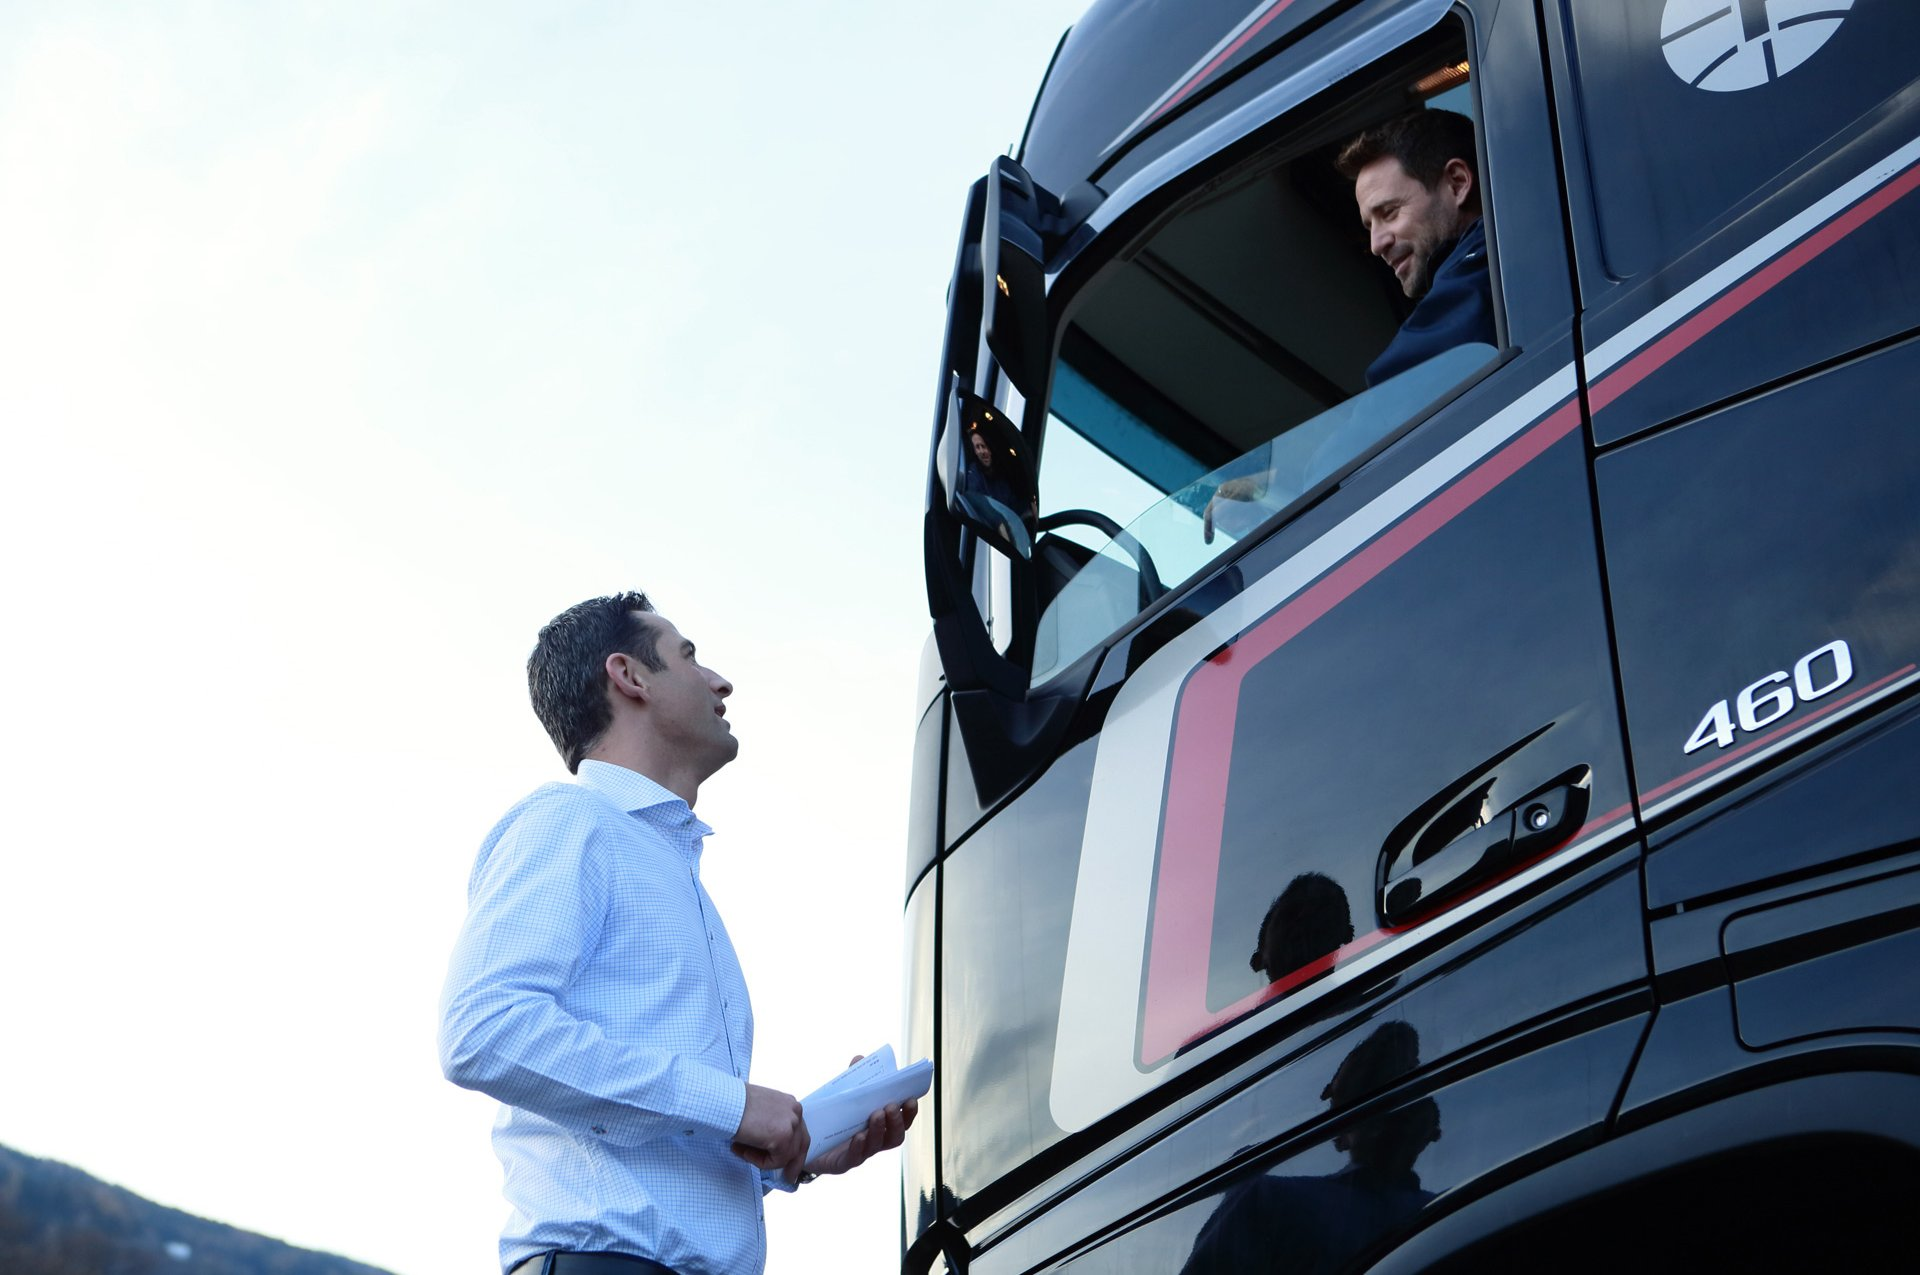 Andreas Fluckinger talking to a truck driver